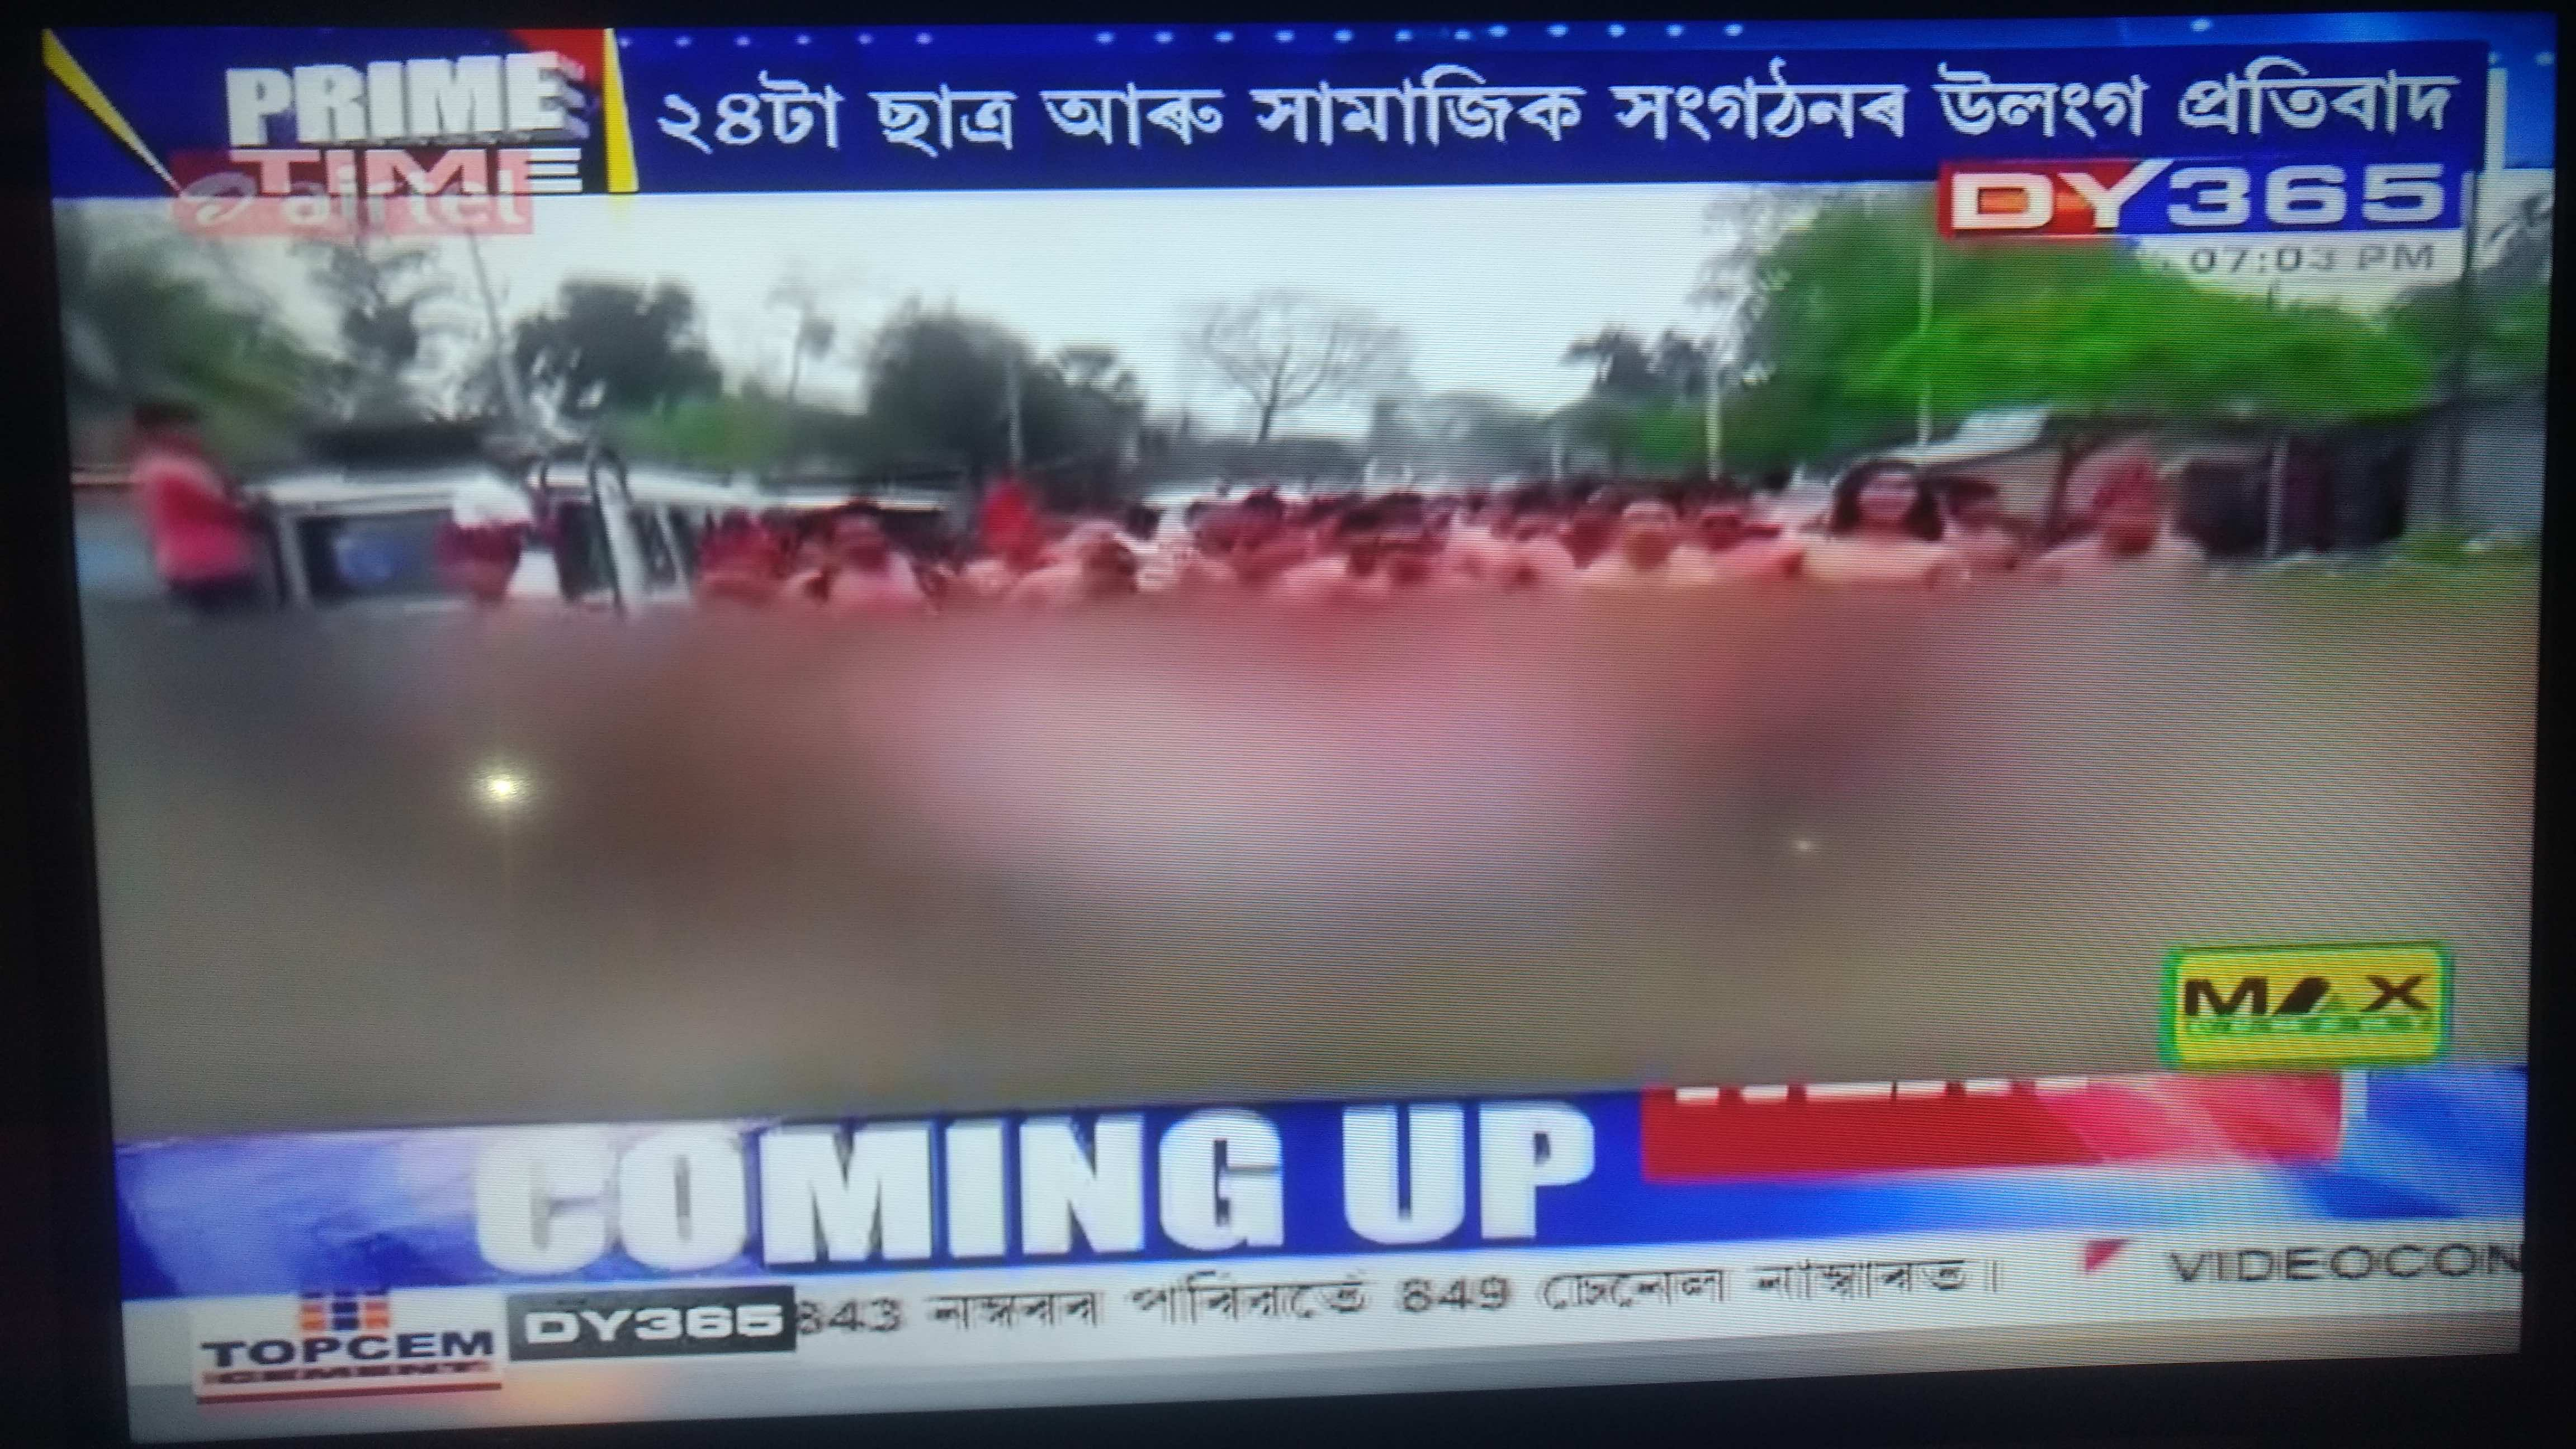 24 tribal organizations staged naked protest in Karbi Anglong